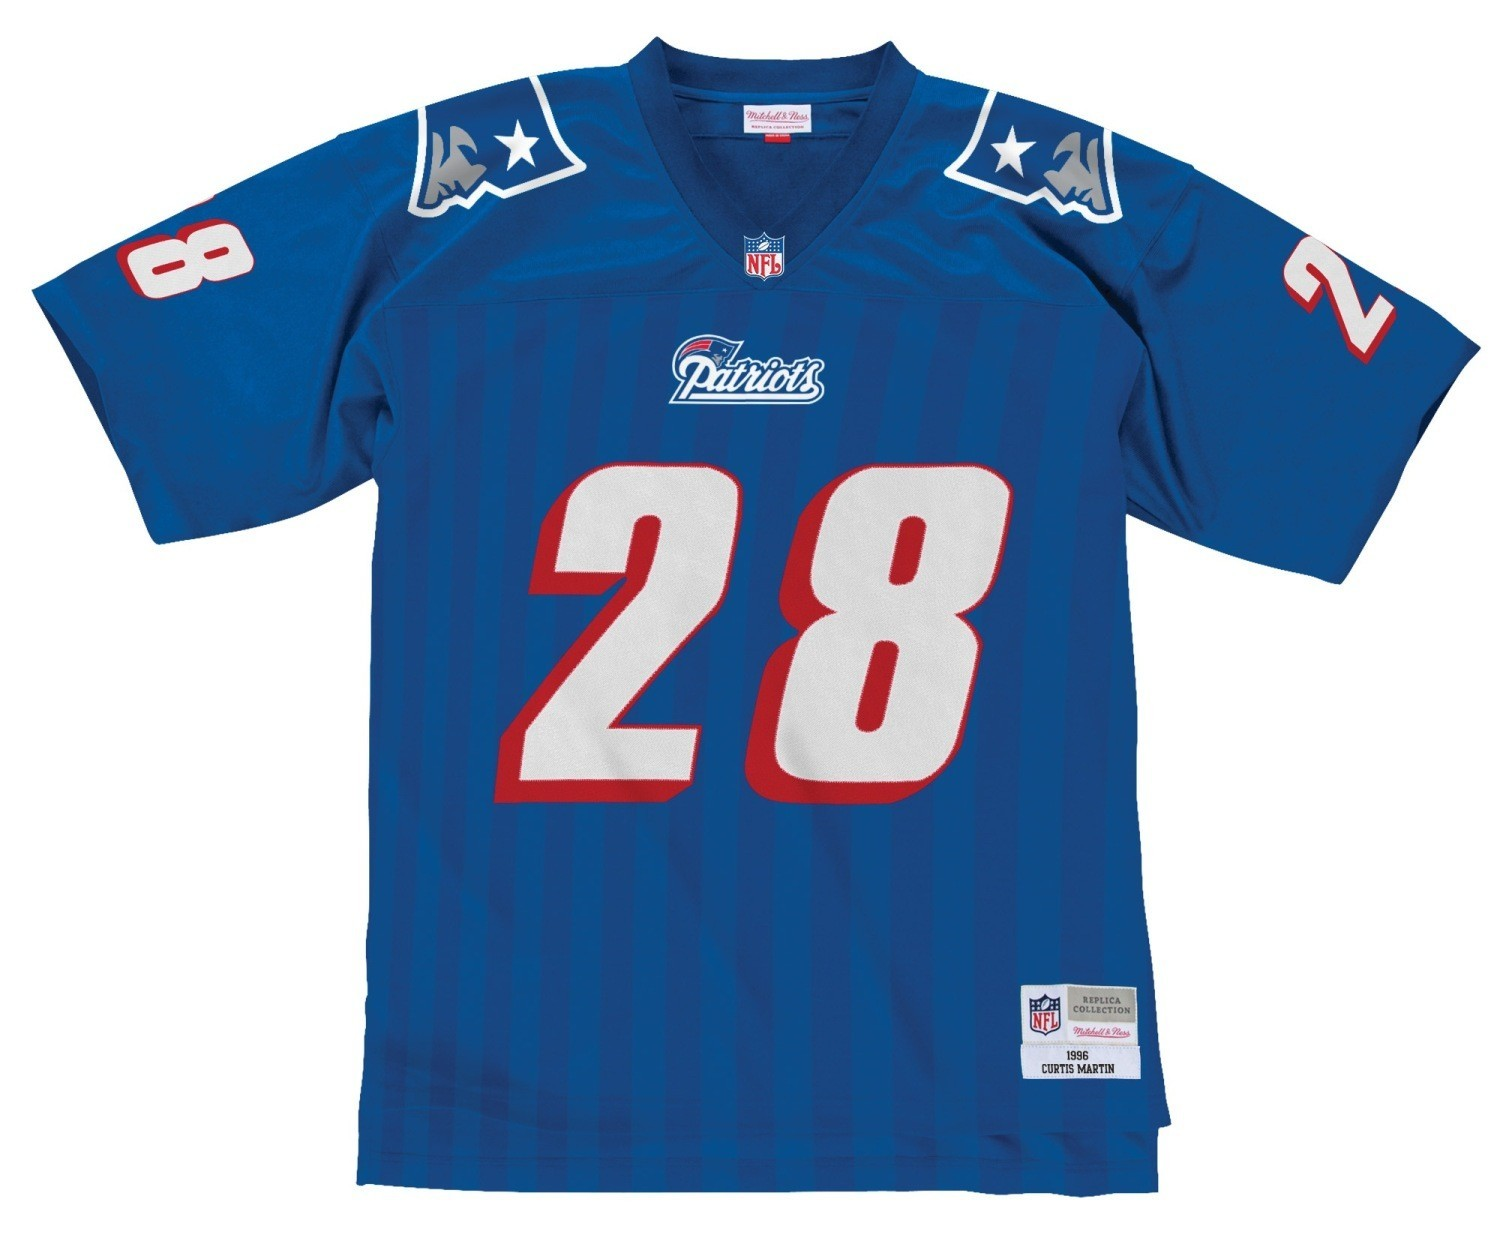 separation shoes 278f3 14163 Details about Curtis Martin New England Patriots NFL Mitchell & Ness  Throwback Premier Jersey